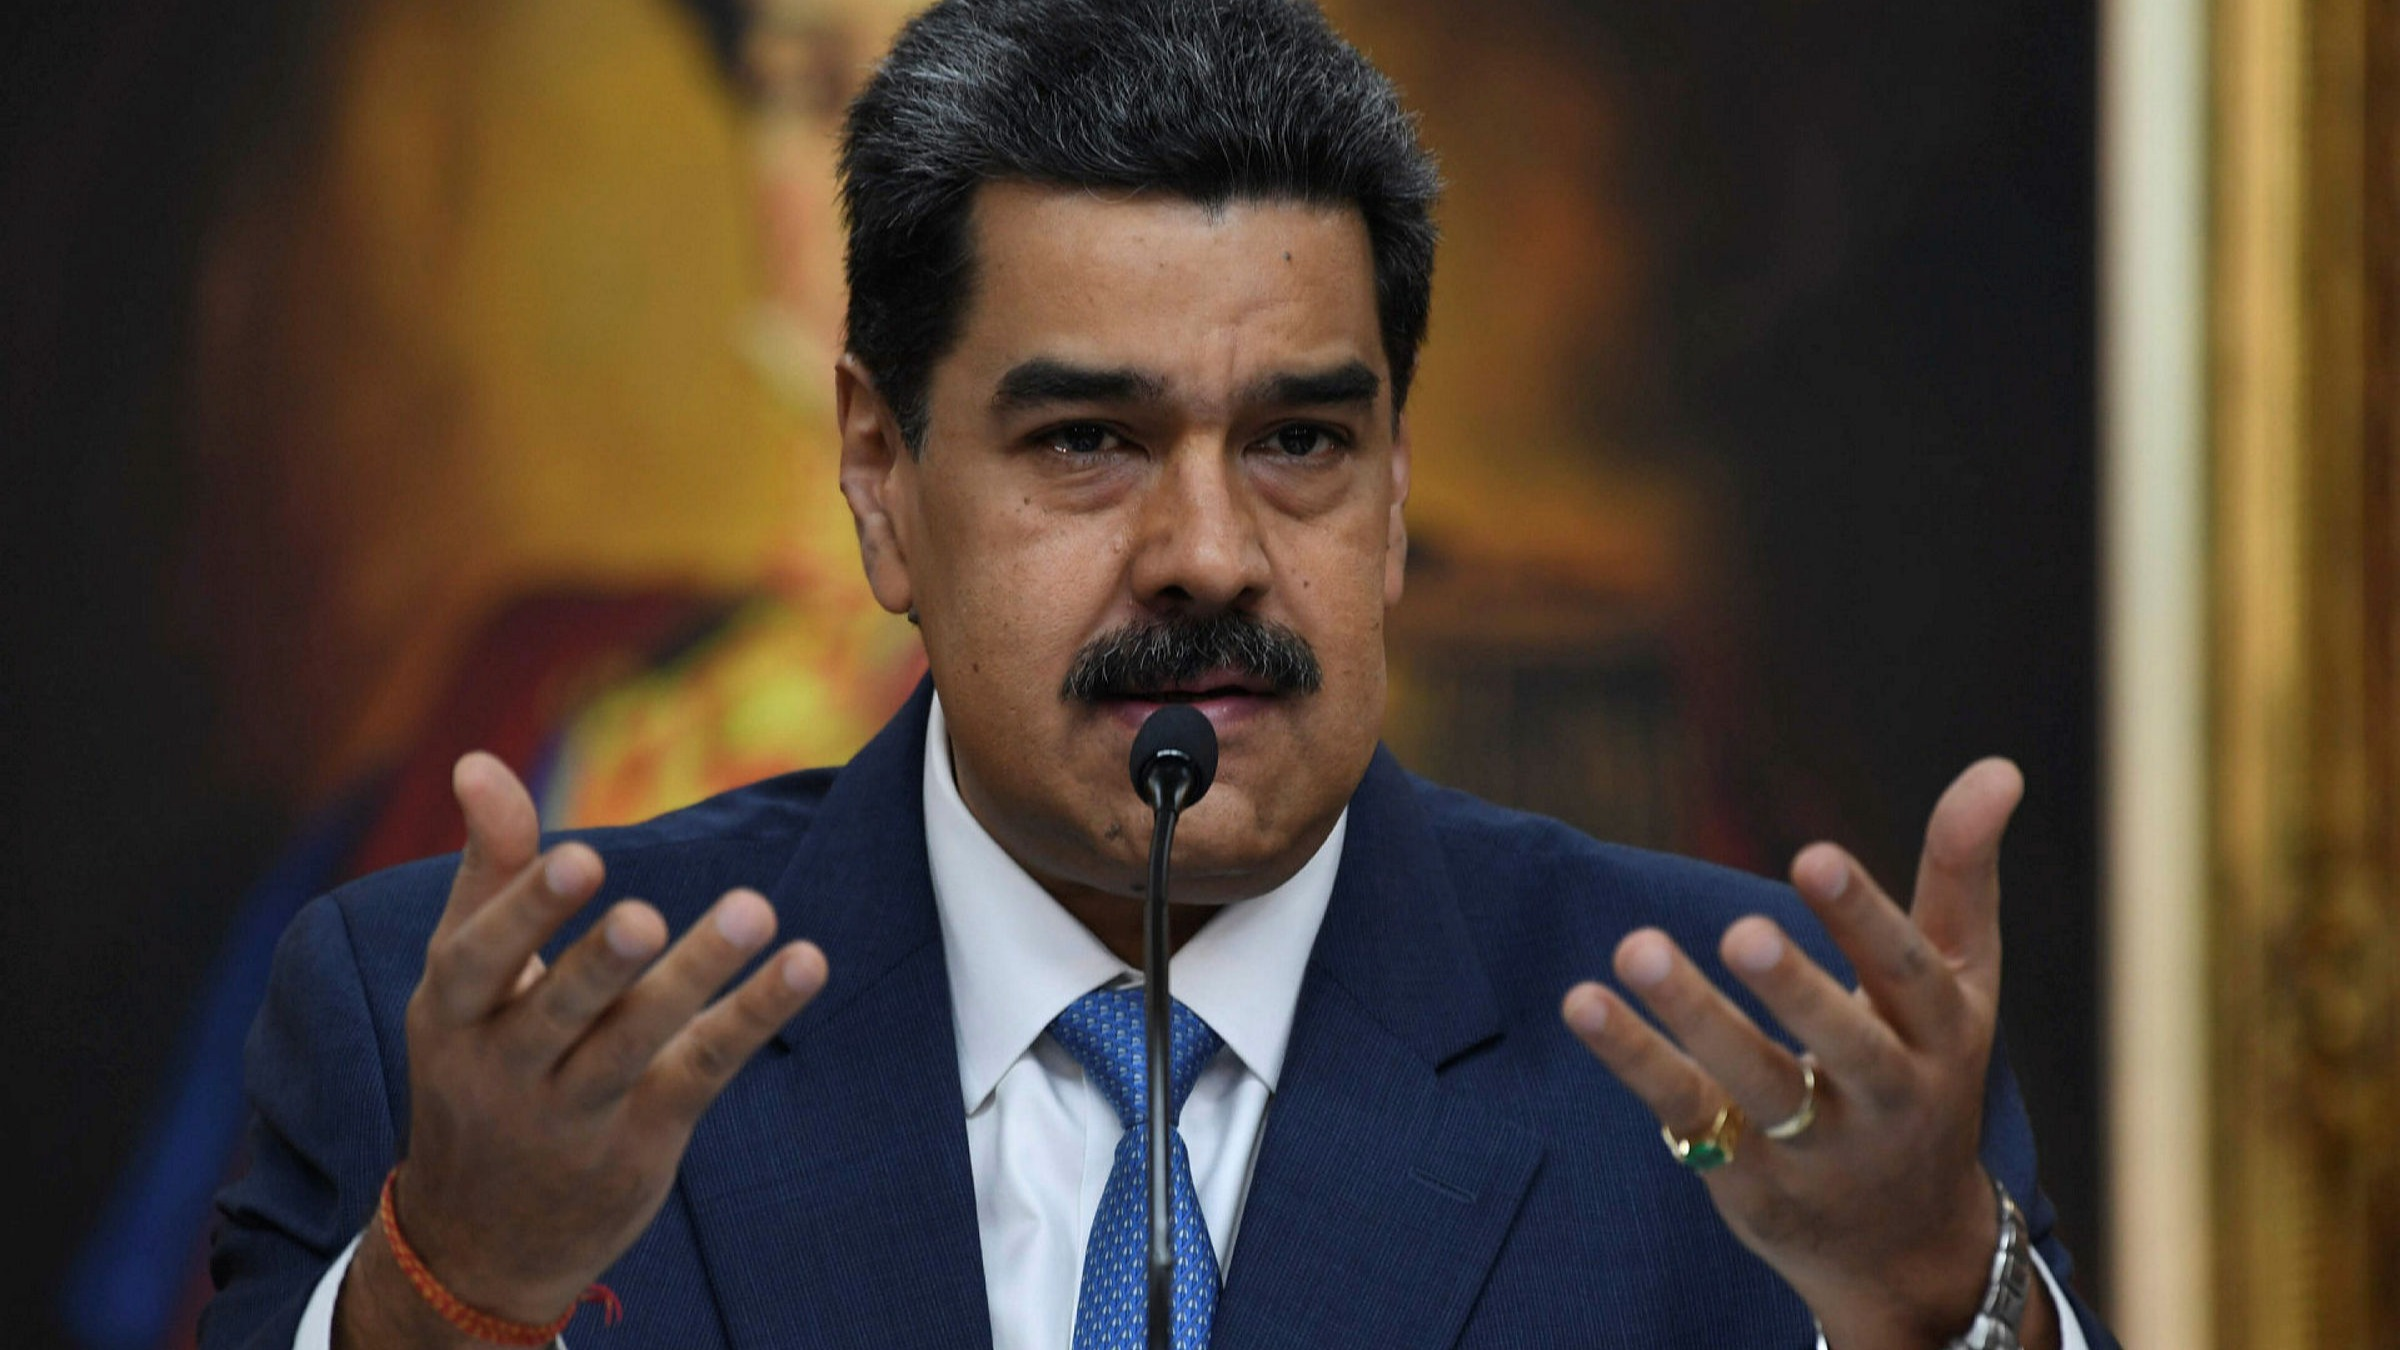 The Venezuelan President has announced a new phase of military exercises